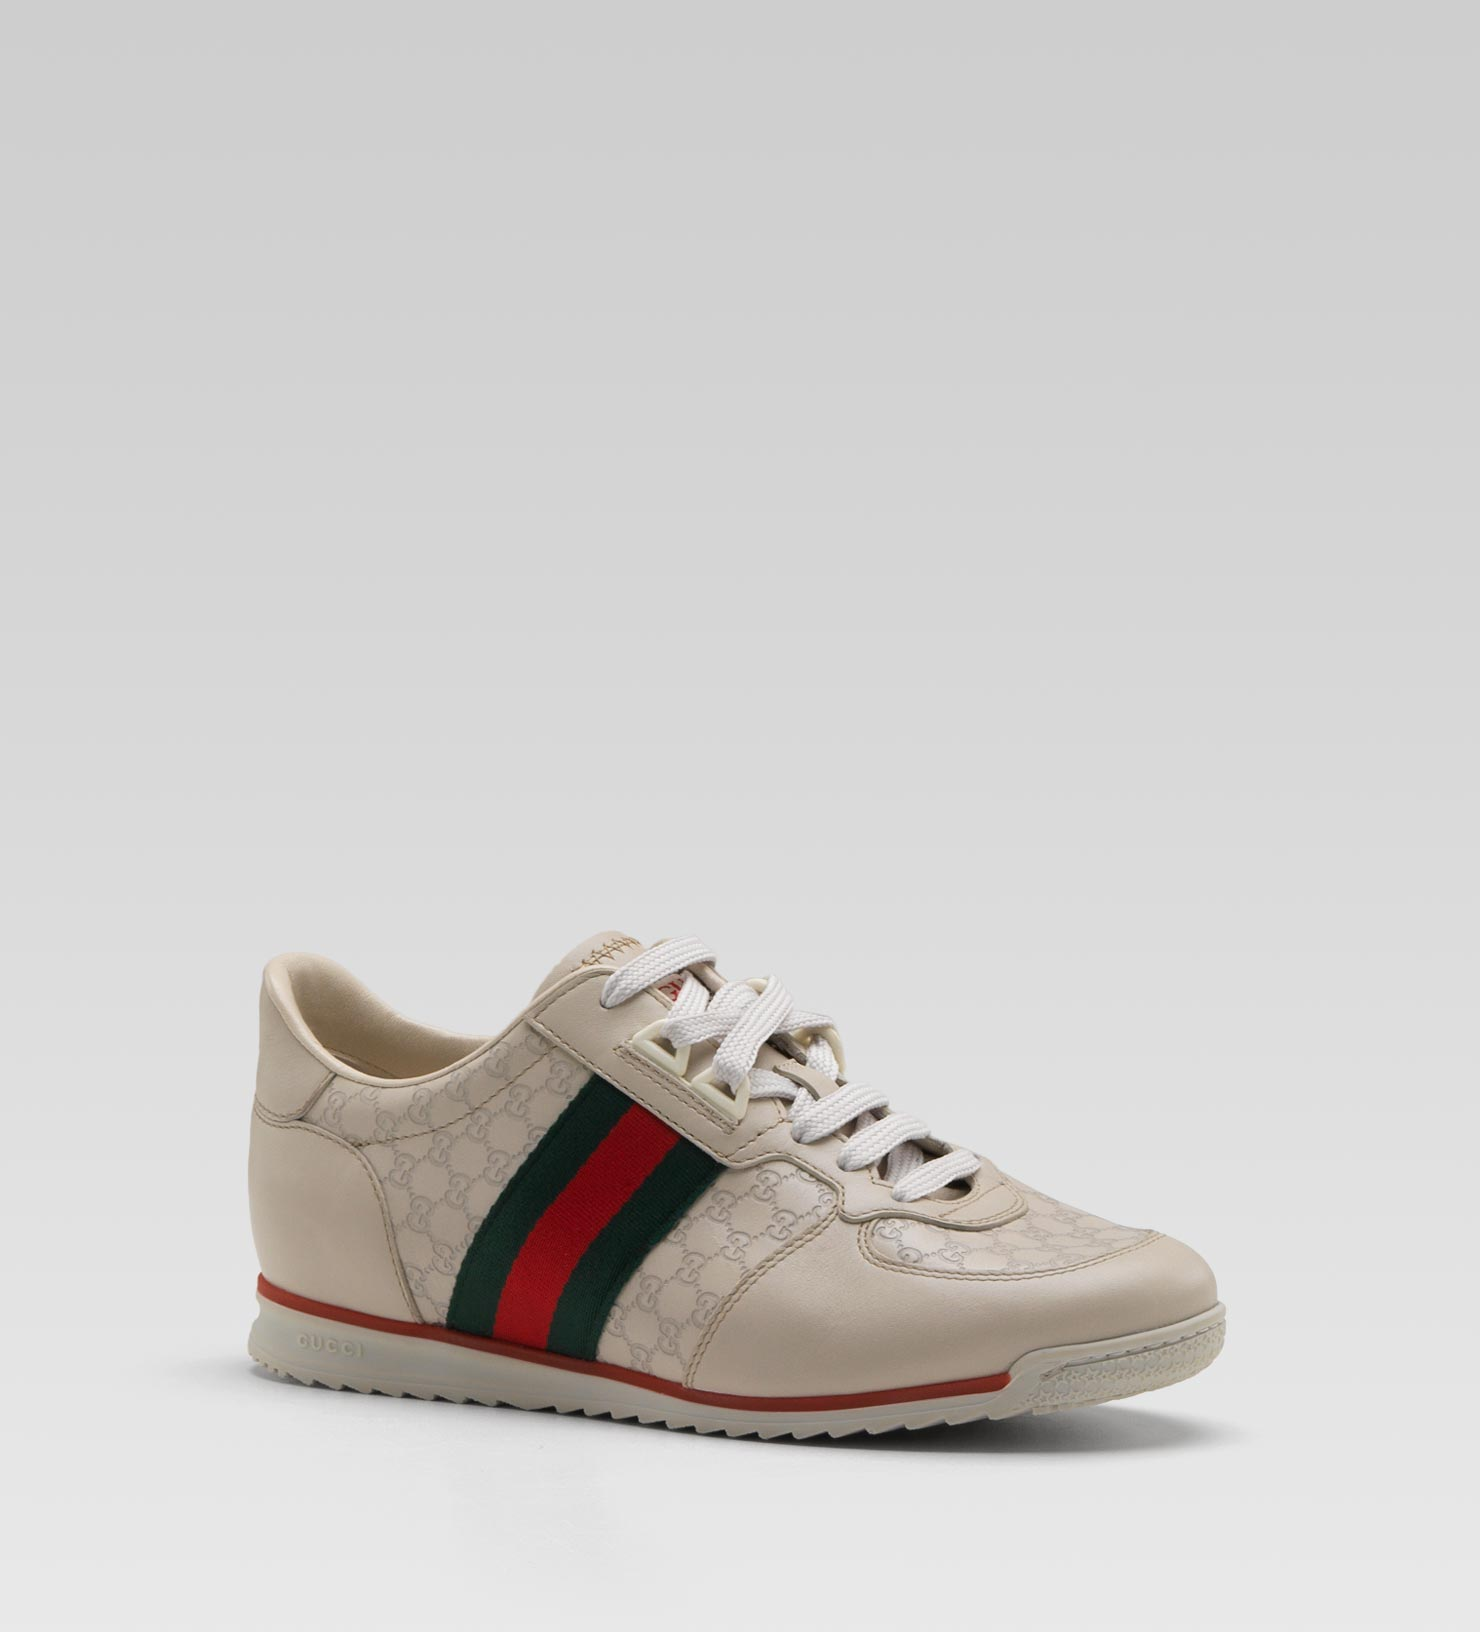 7c81566d3b6 Lyst - Gucci Sl73 Laceup Trainer with Signature Web Gucci Label On ...